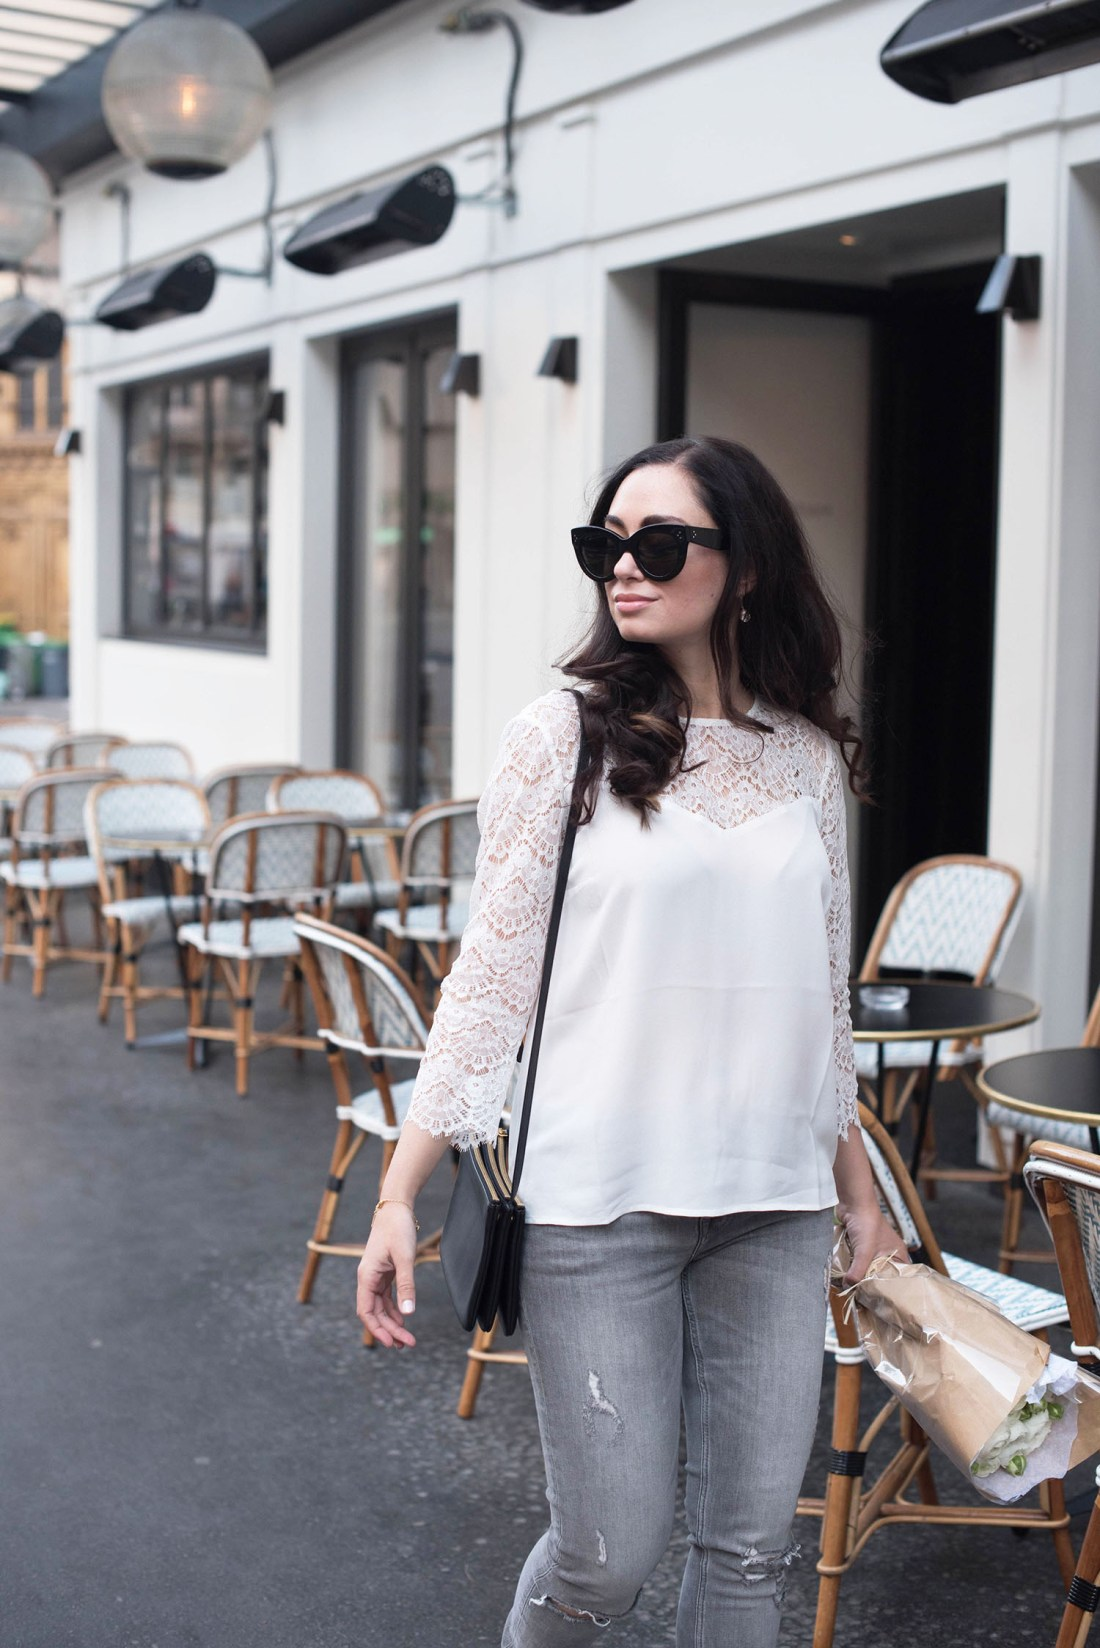 Style blogger Cee Fardoe of Coco & Vera walks past Maison Marie in Paris wearing Celine Audrey sunglasses and grey jeans